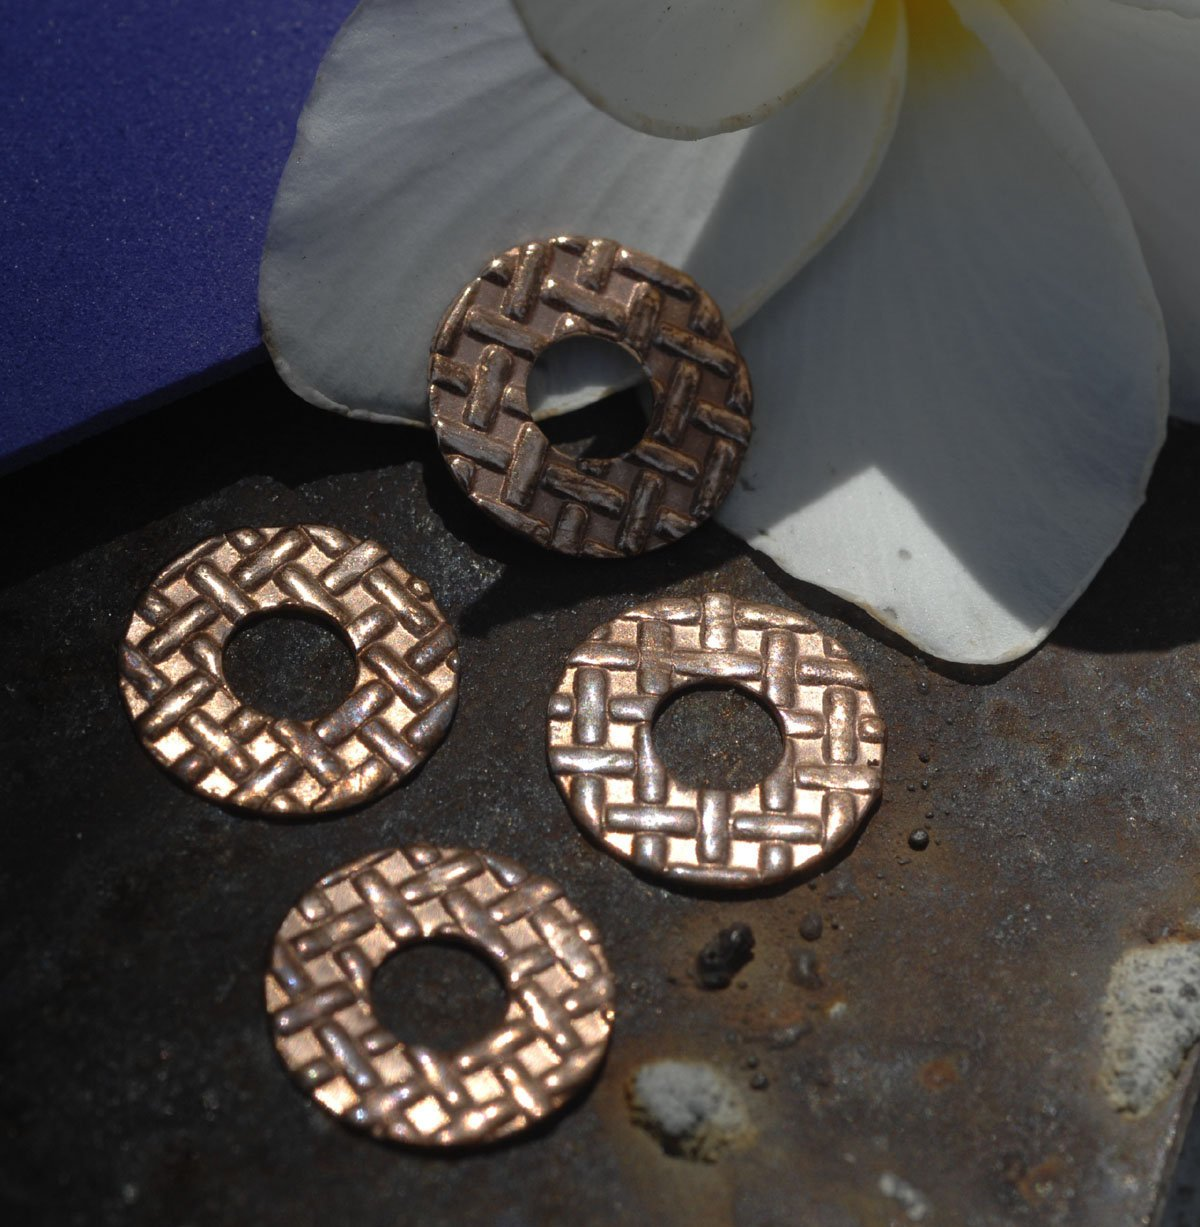 Copper Donut Washer 14mm 24g Tight Weave Polished Textured Blanks Shape - Lampwork Beadcaps Possibly